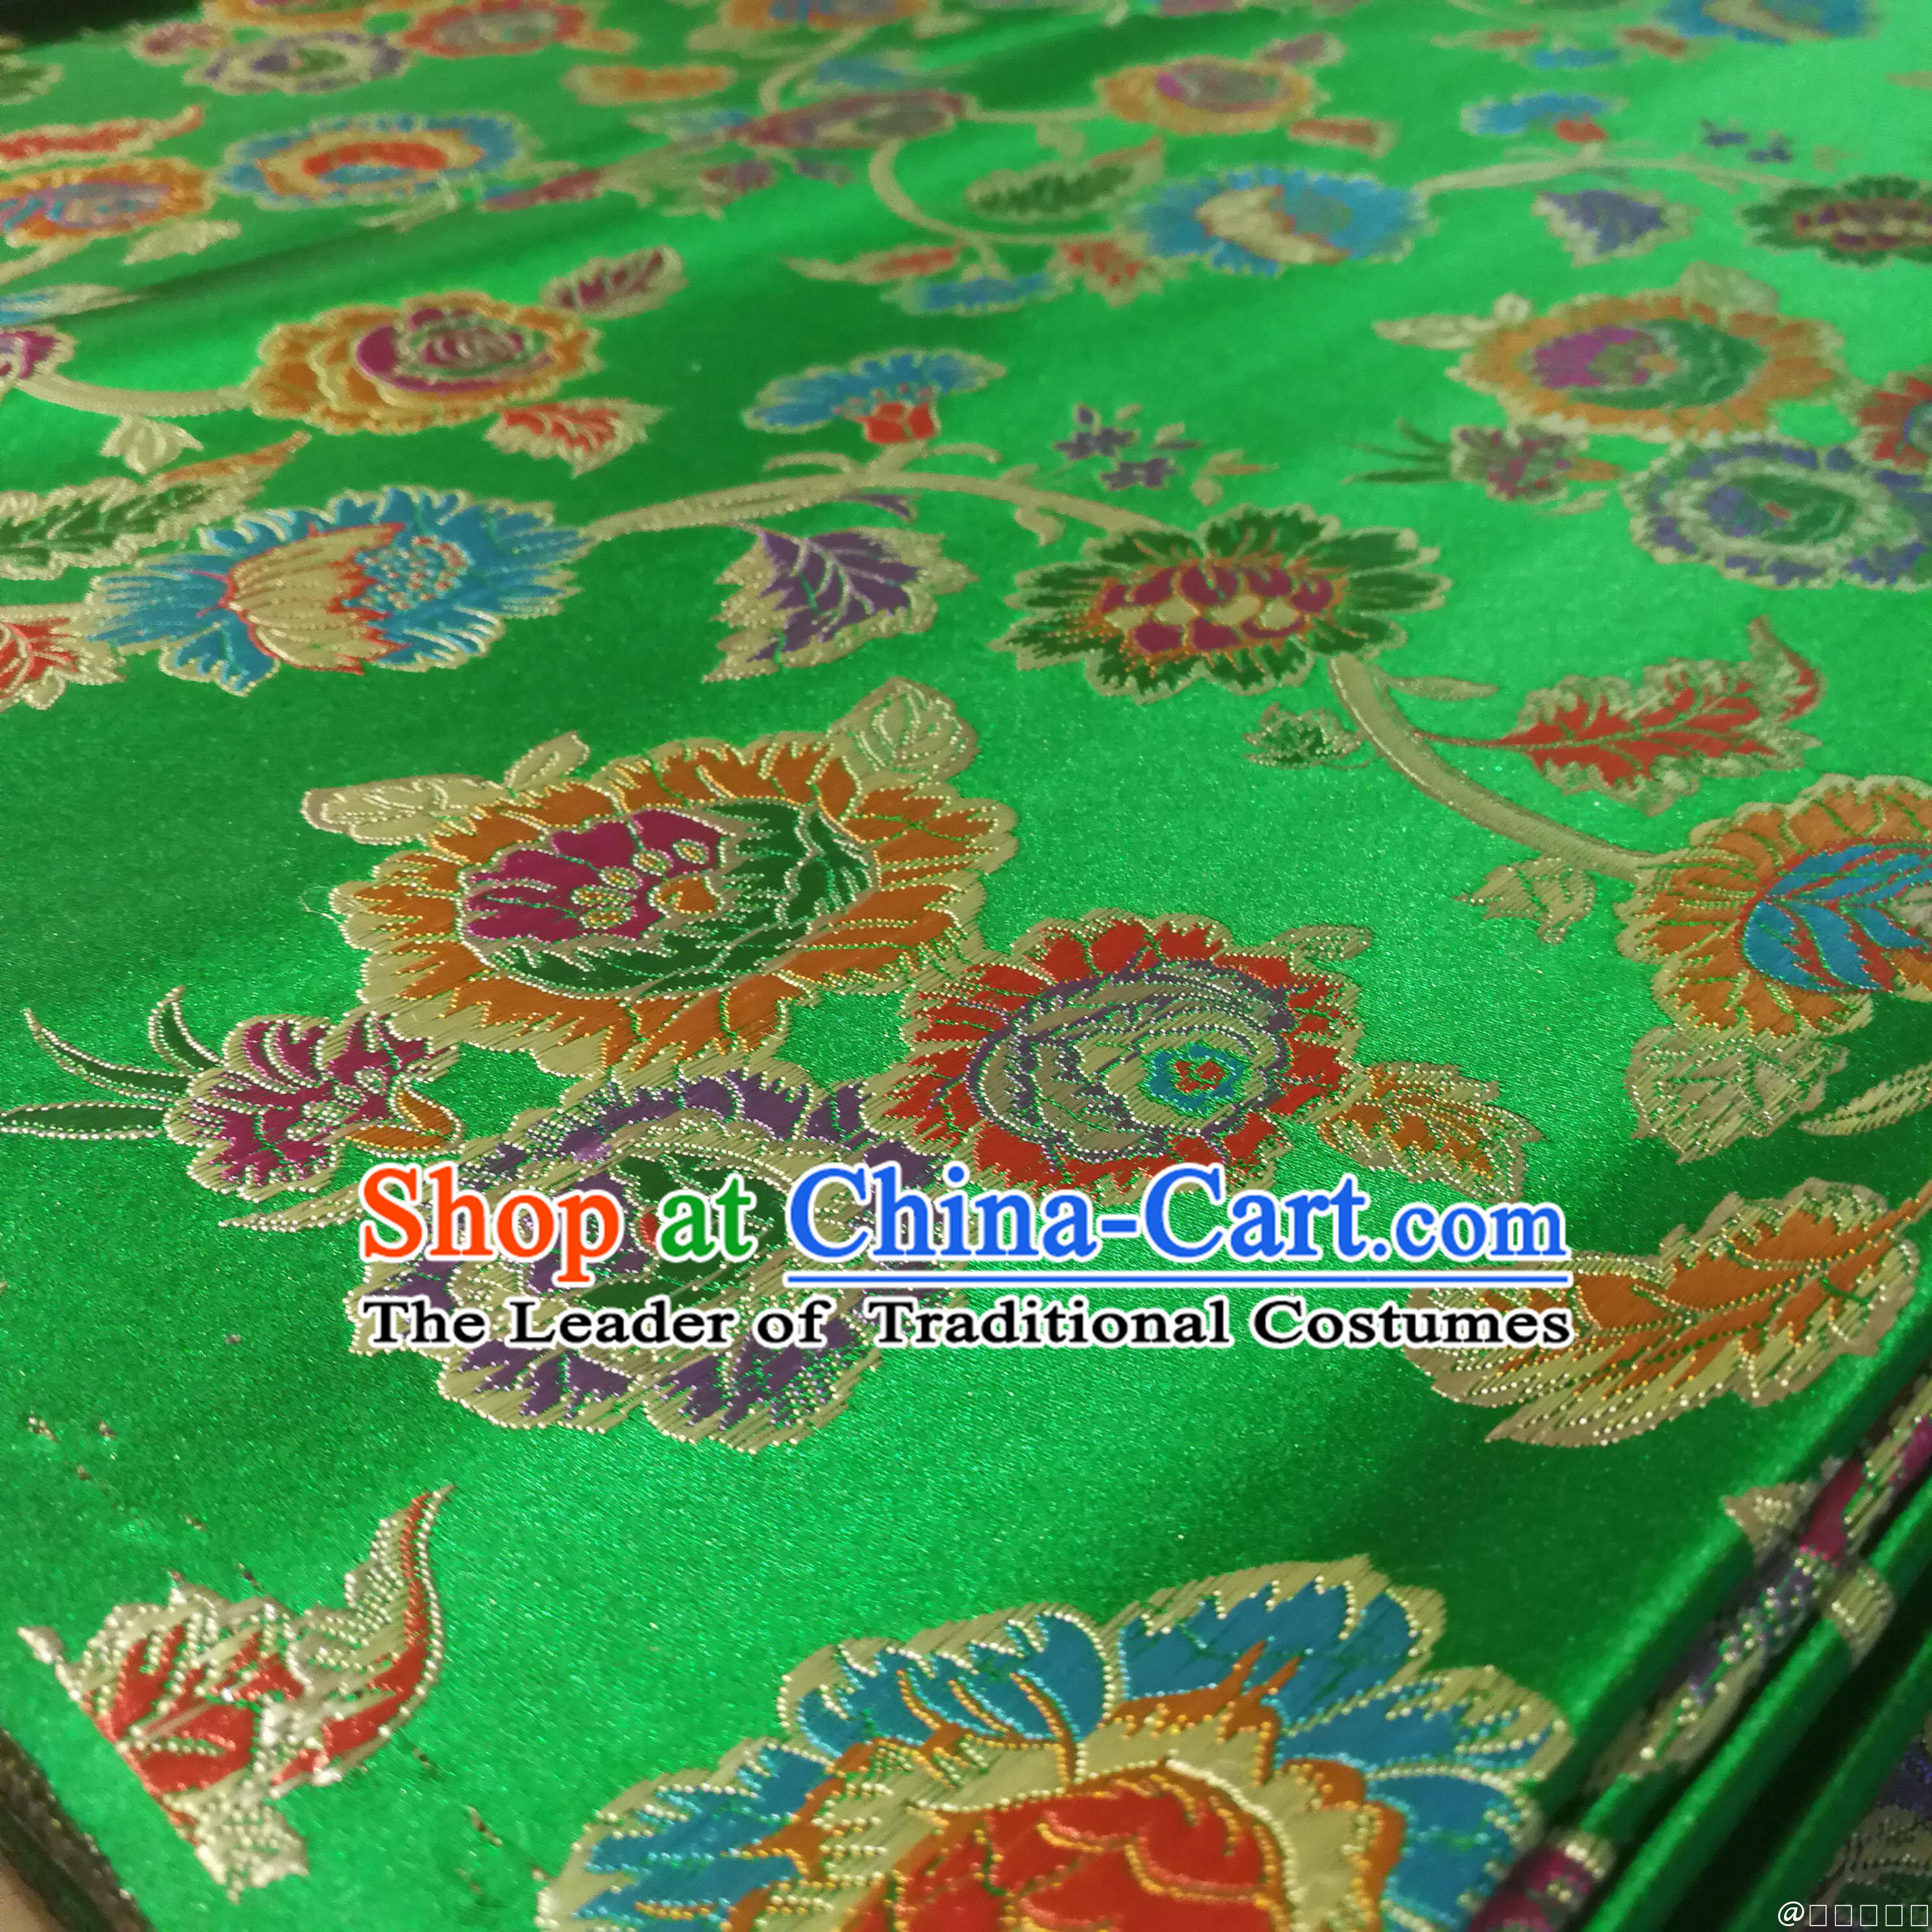 Green Color Chinese Royal Palace Style Traditional Pattern Peony Flower Design Brocade Fabric Silk Fabric Chinese Fabric Asian Material